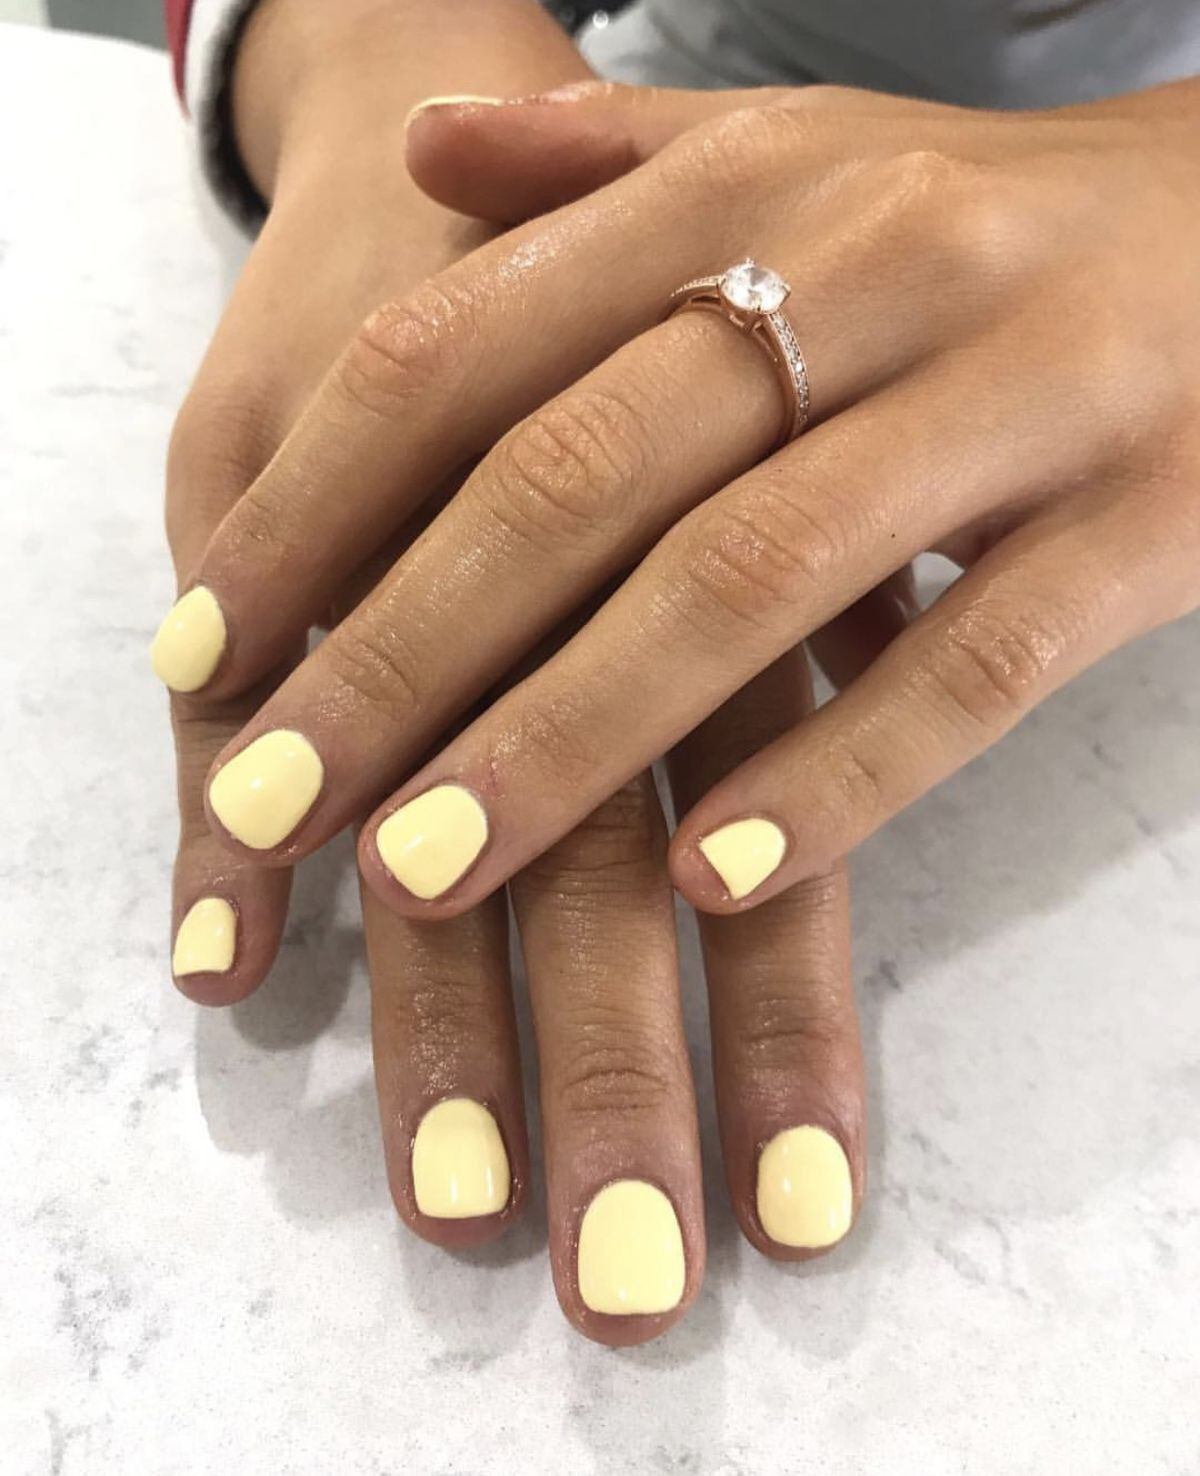 Pale Yellow Mani Manicure Summer Nails Square Oval Shape Squoval Clean Fre Nail Polish Colors Summer Yellow Nails Trending Nail Polish Colors